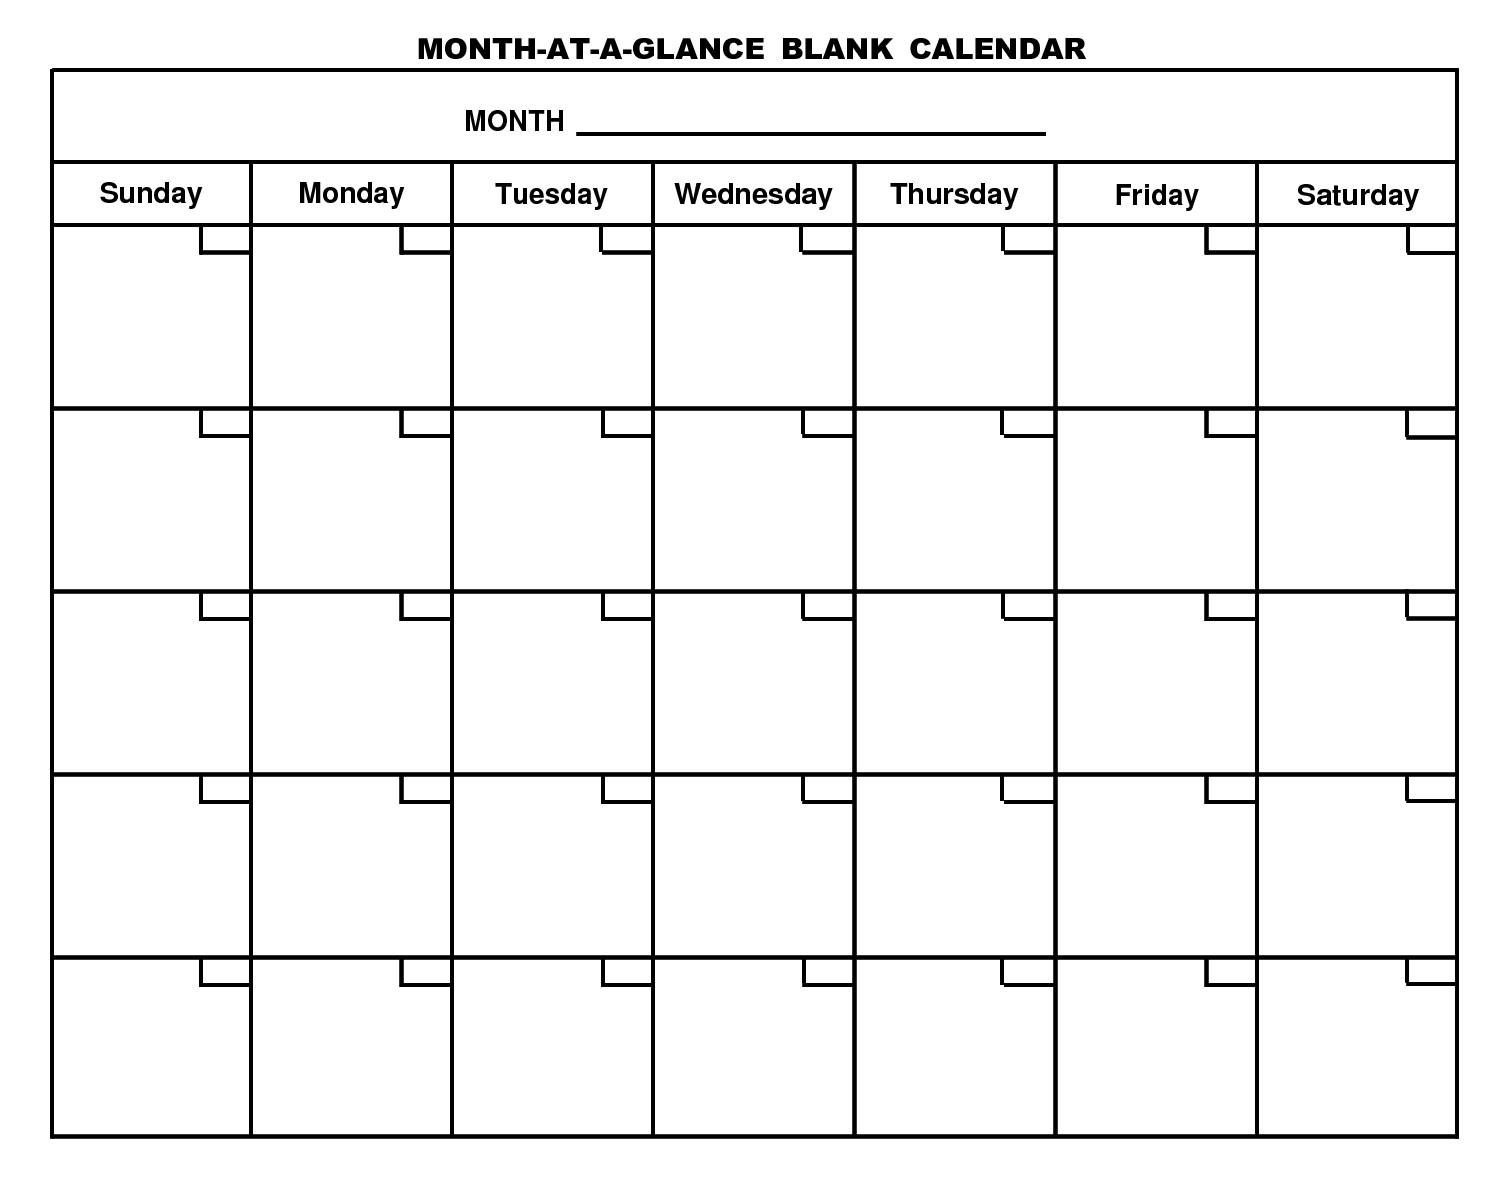 Month At A Glance Blank Calendar | Monthly Printable Calender Exceptional Month At A Glance Blank Template